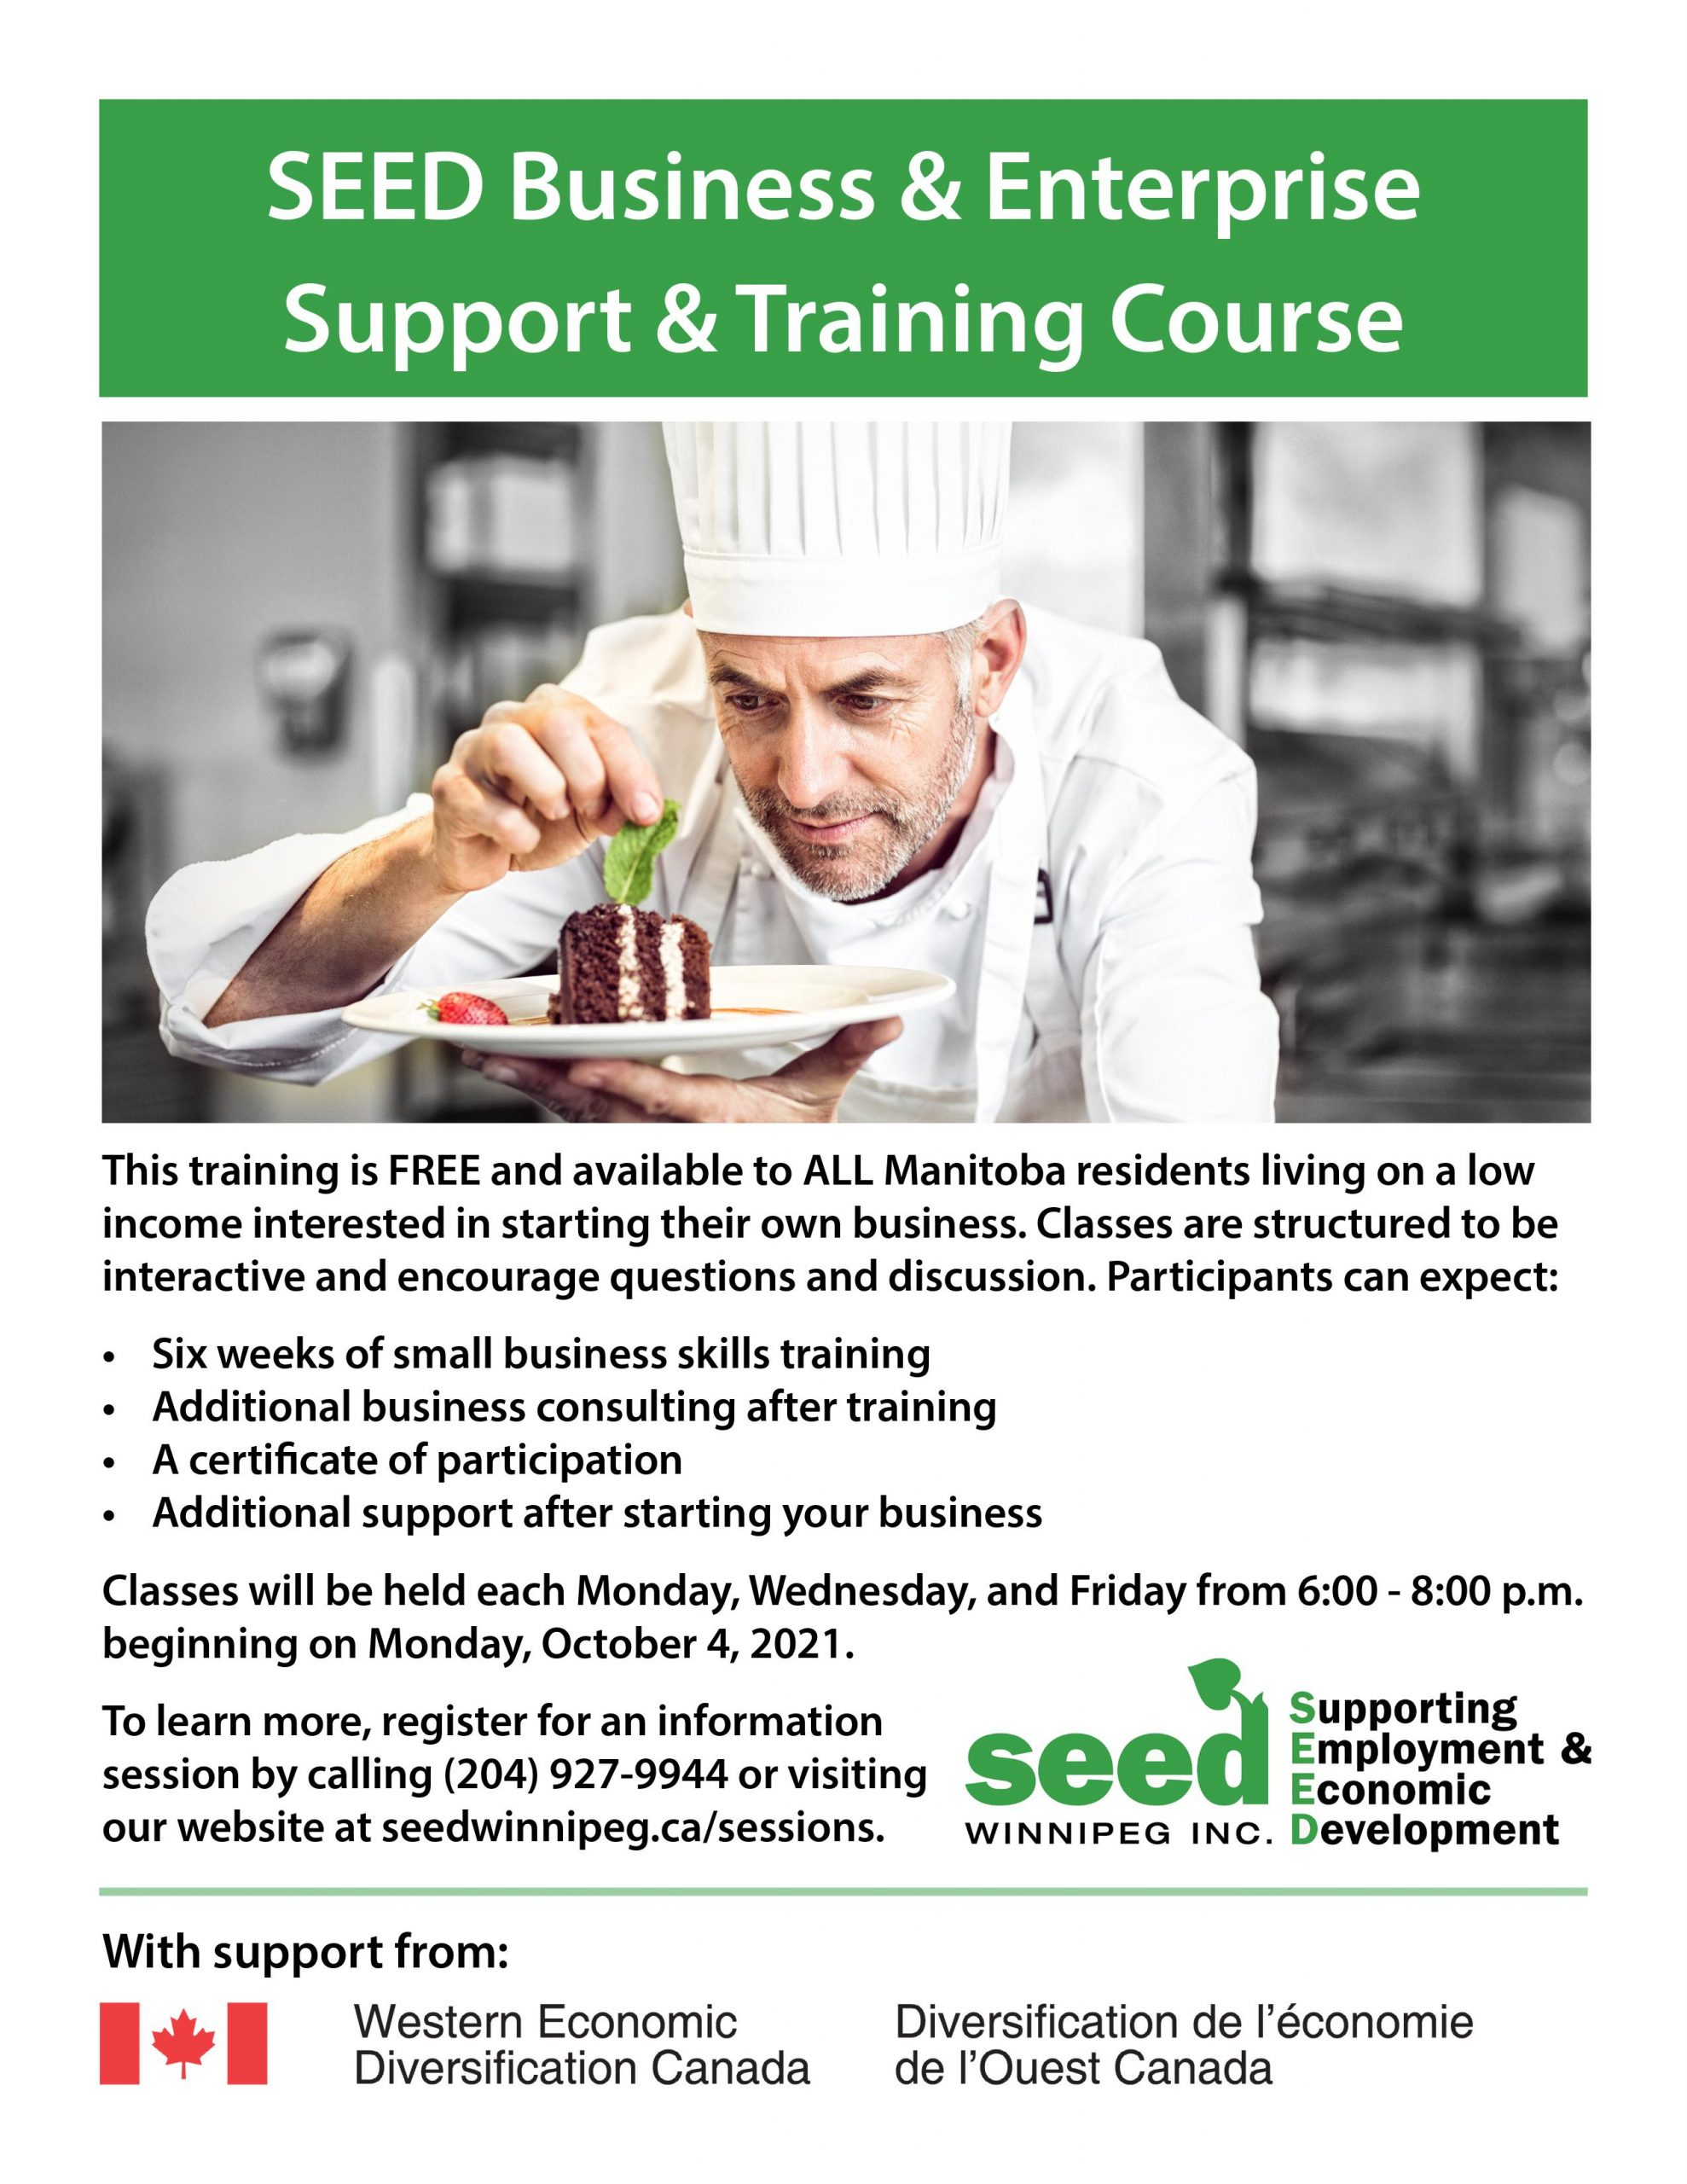 SEED business & enterprise support & training course